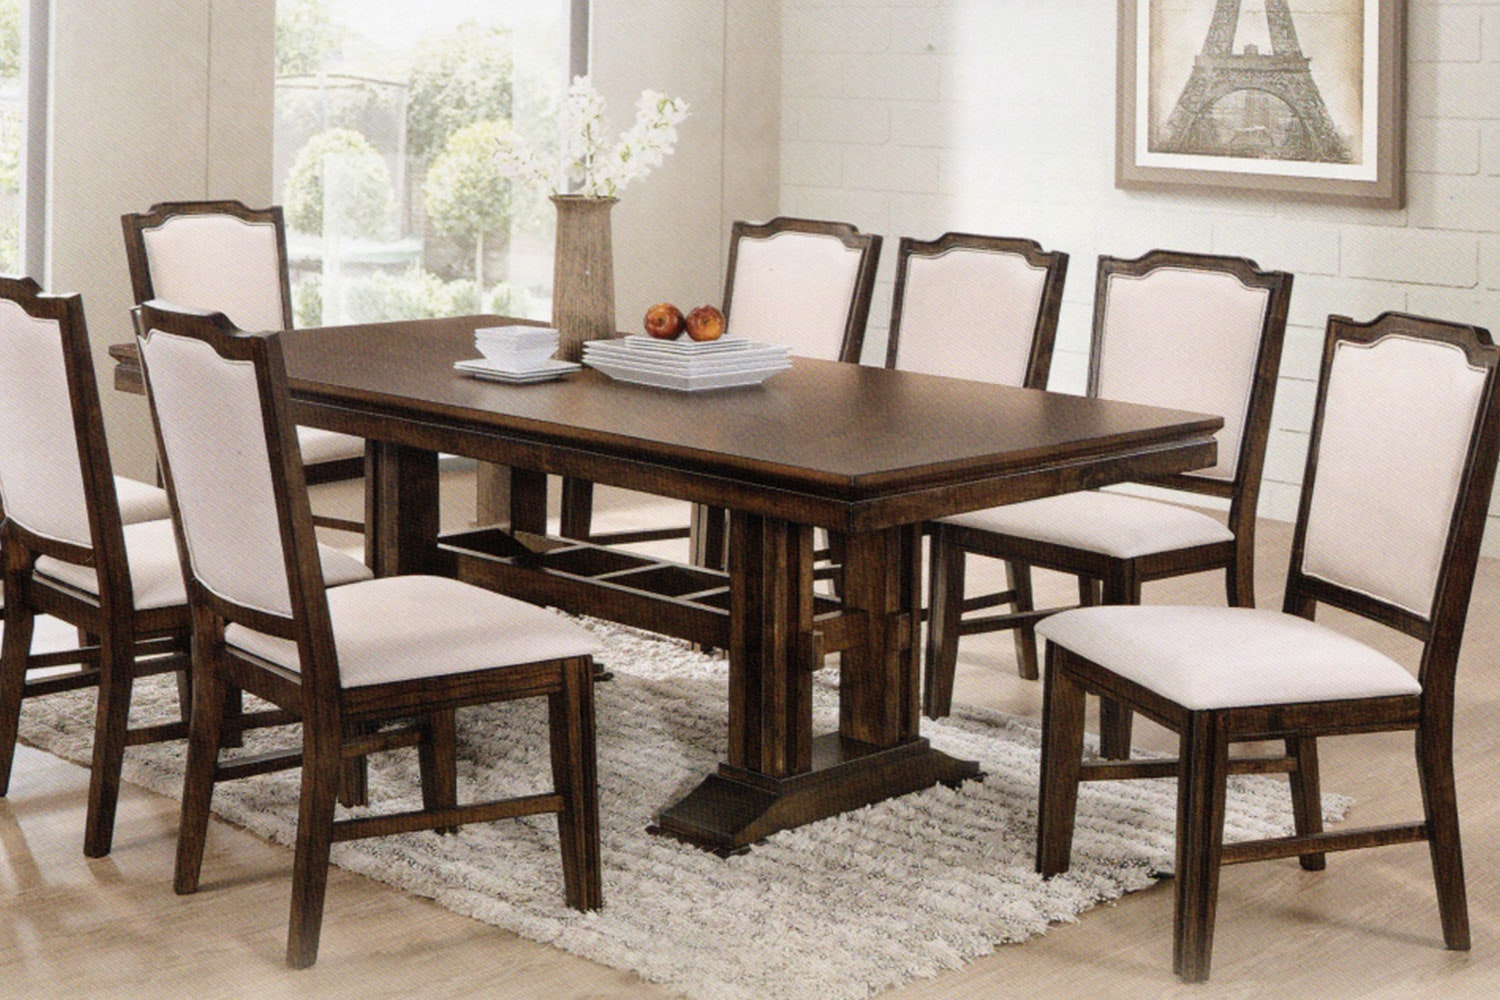 Windsor 9 Piece Dining Suite by Nero Furniture